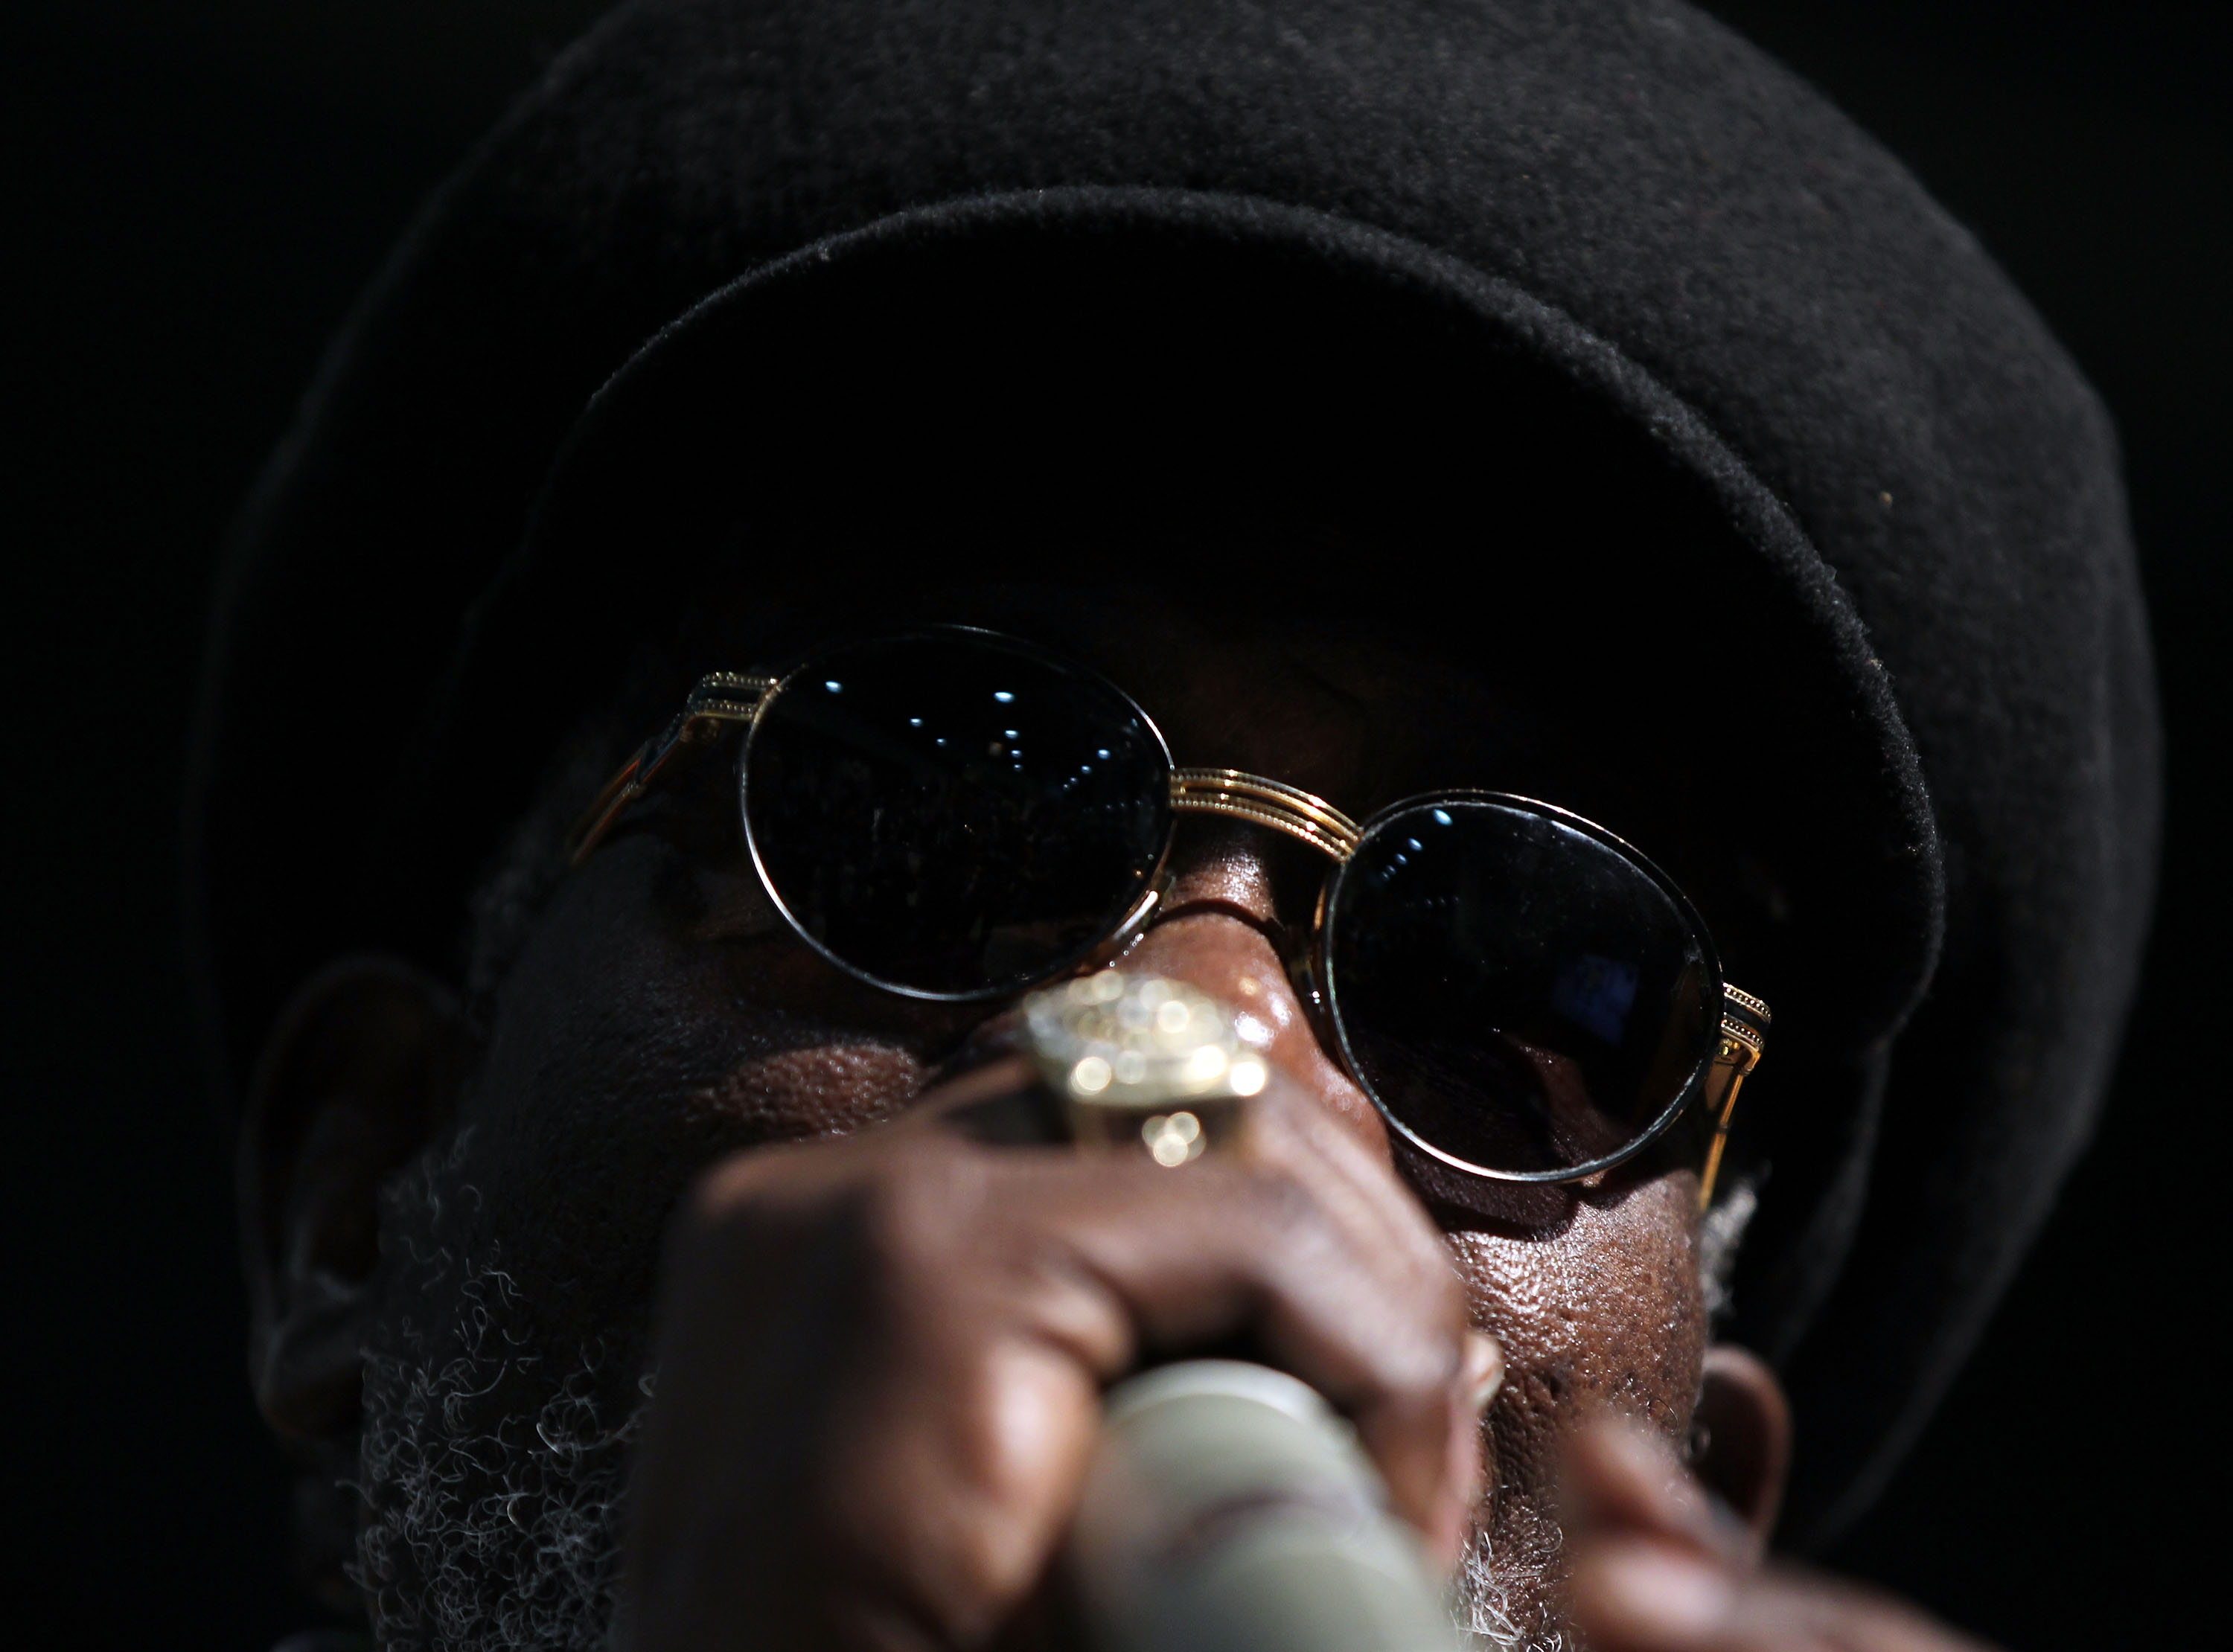 A closer look at the Dancehall Godfather.